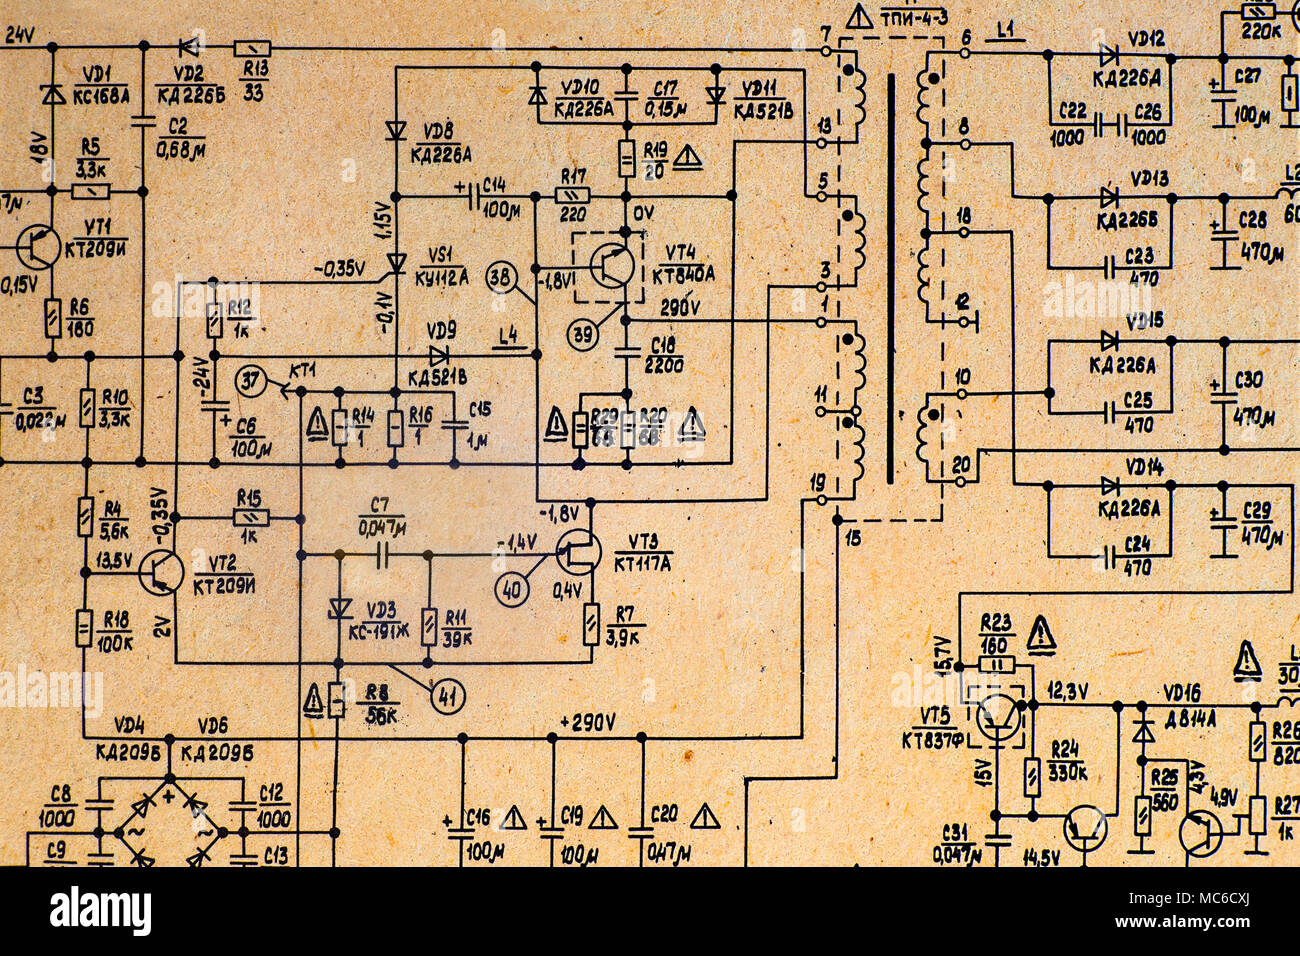 hight resolution of electronic schematic diagram of retro television stock image